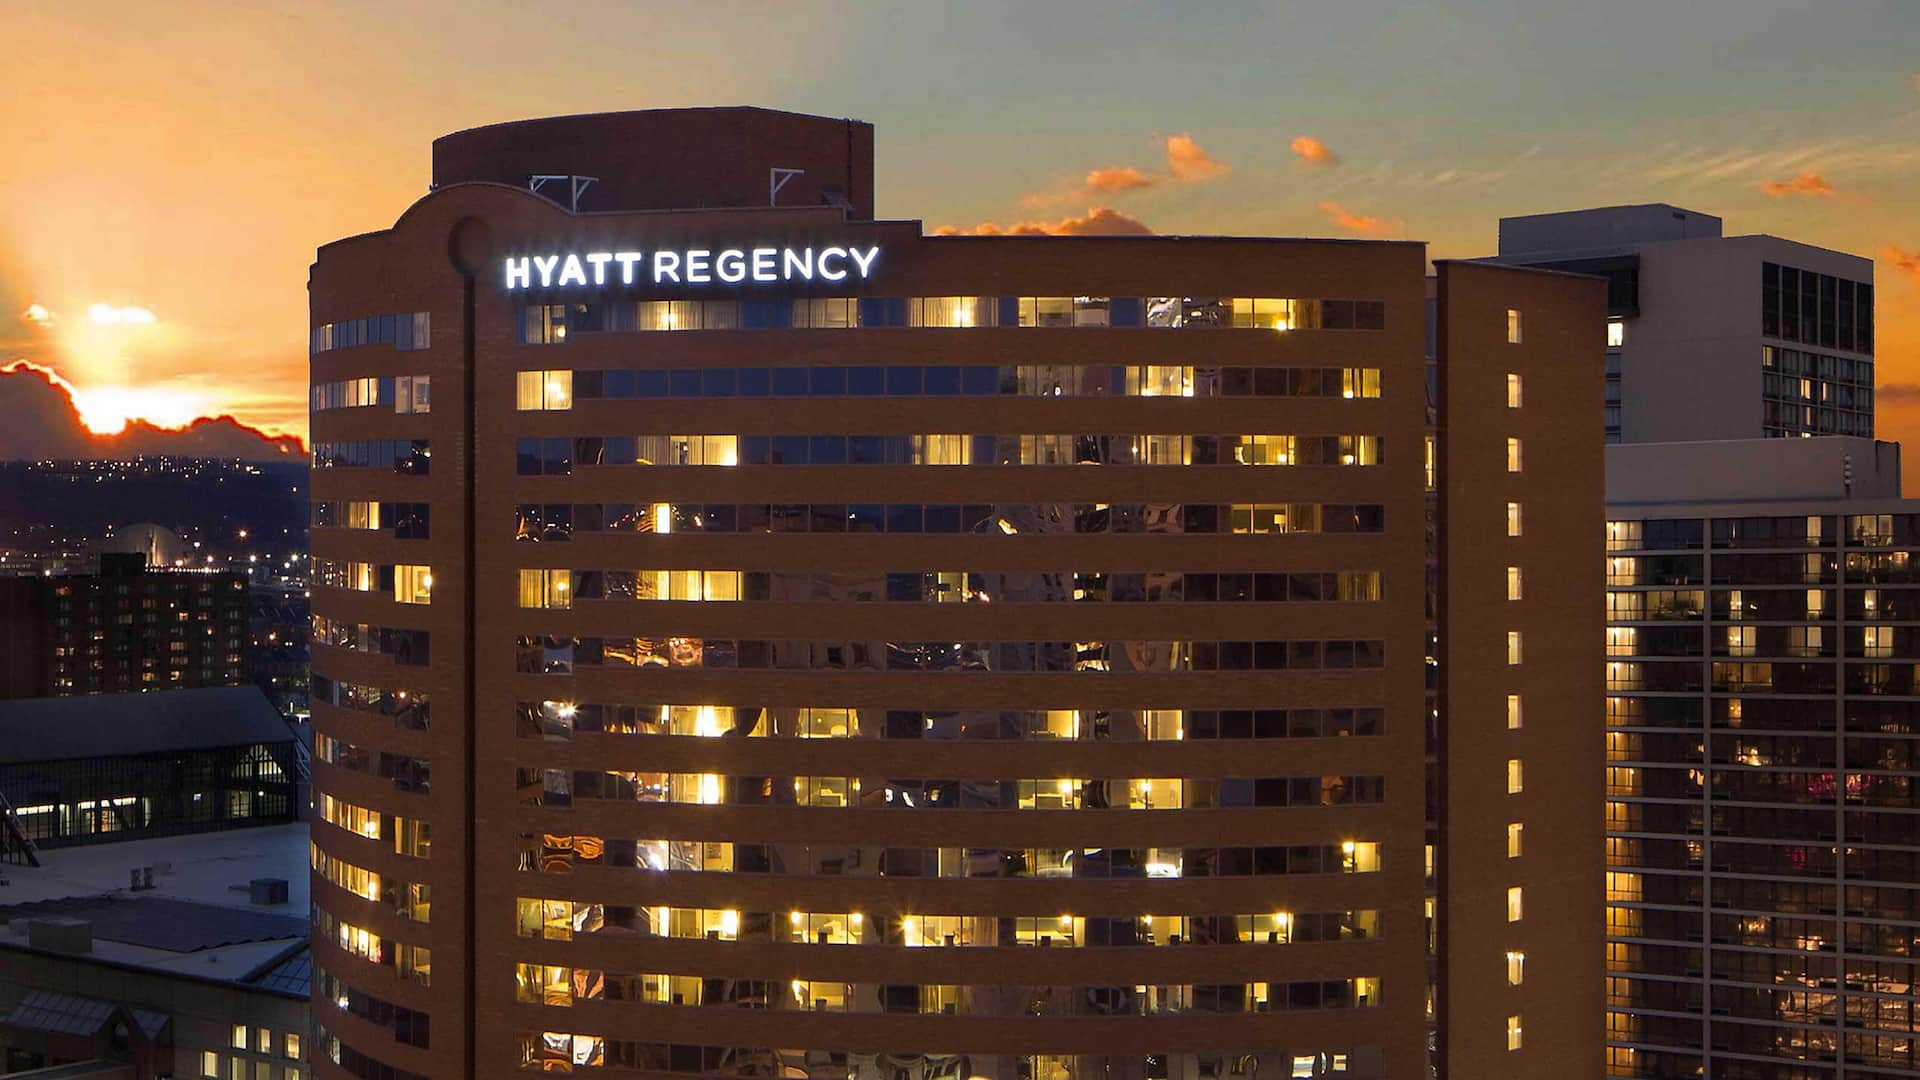 Hyatt Regency Cincinnati Exterior Side